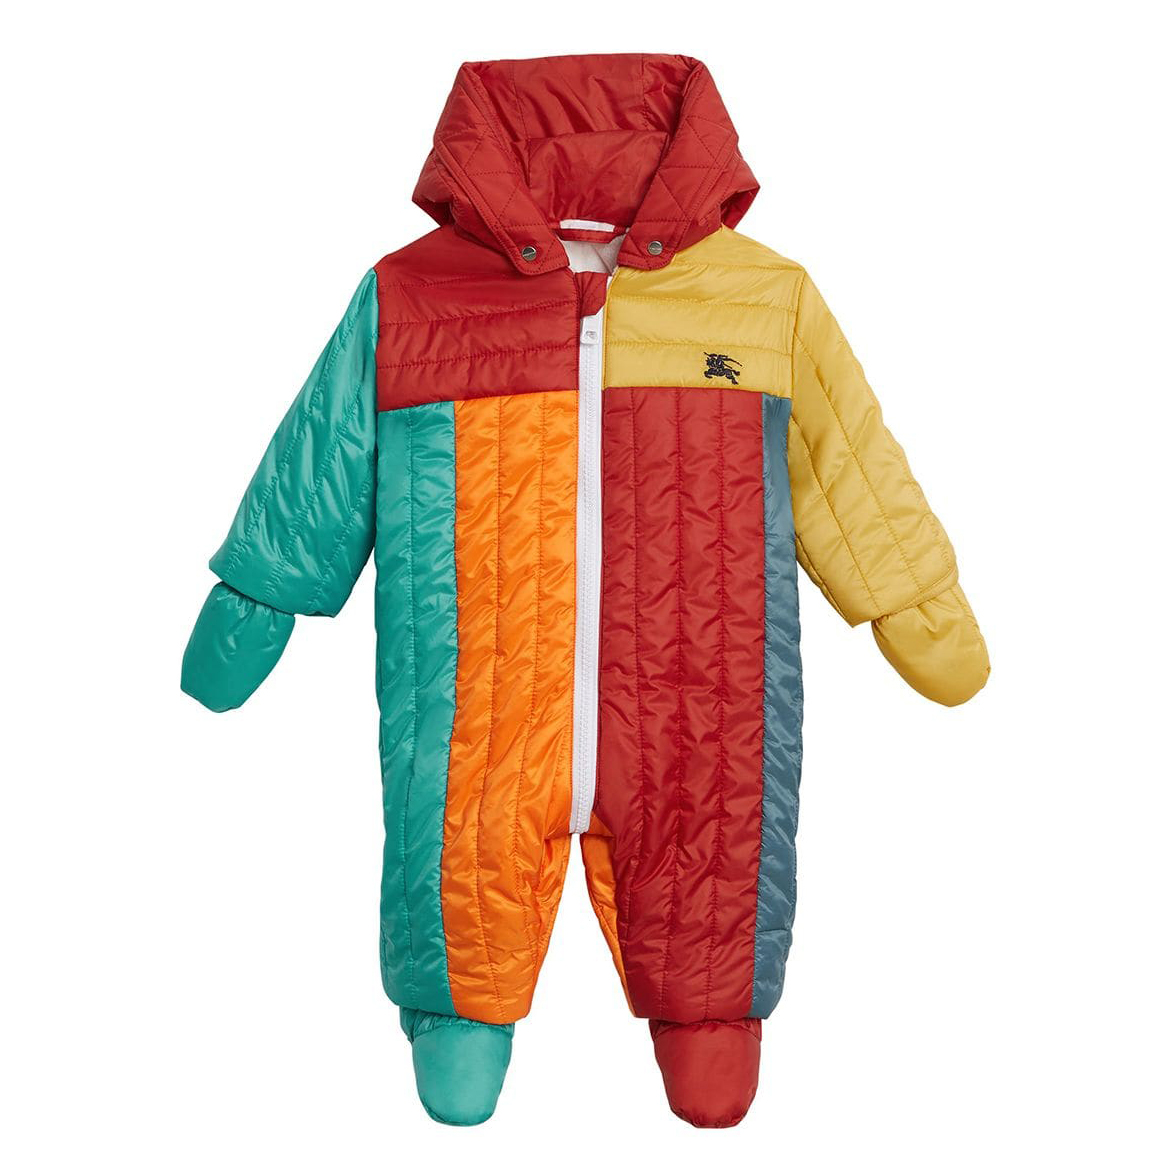 moncler-2 7 Winter Accessories For Babies You Need To Get!